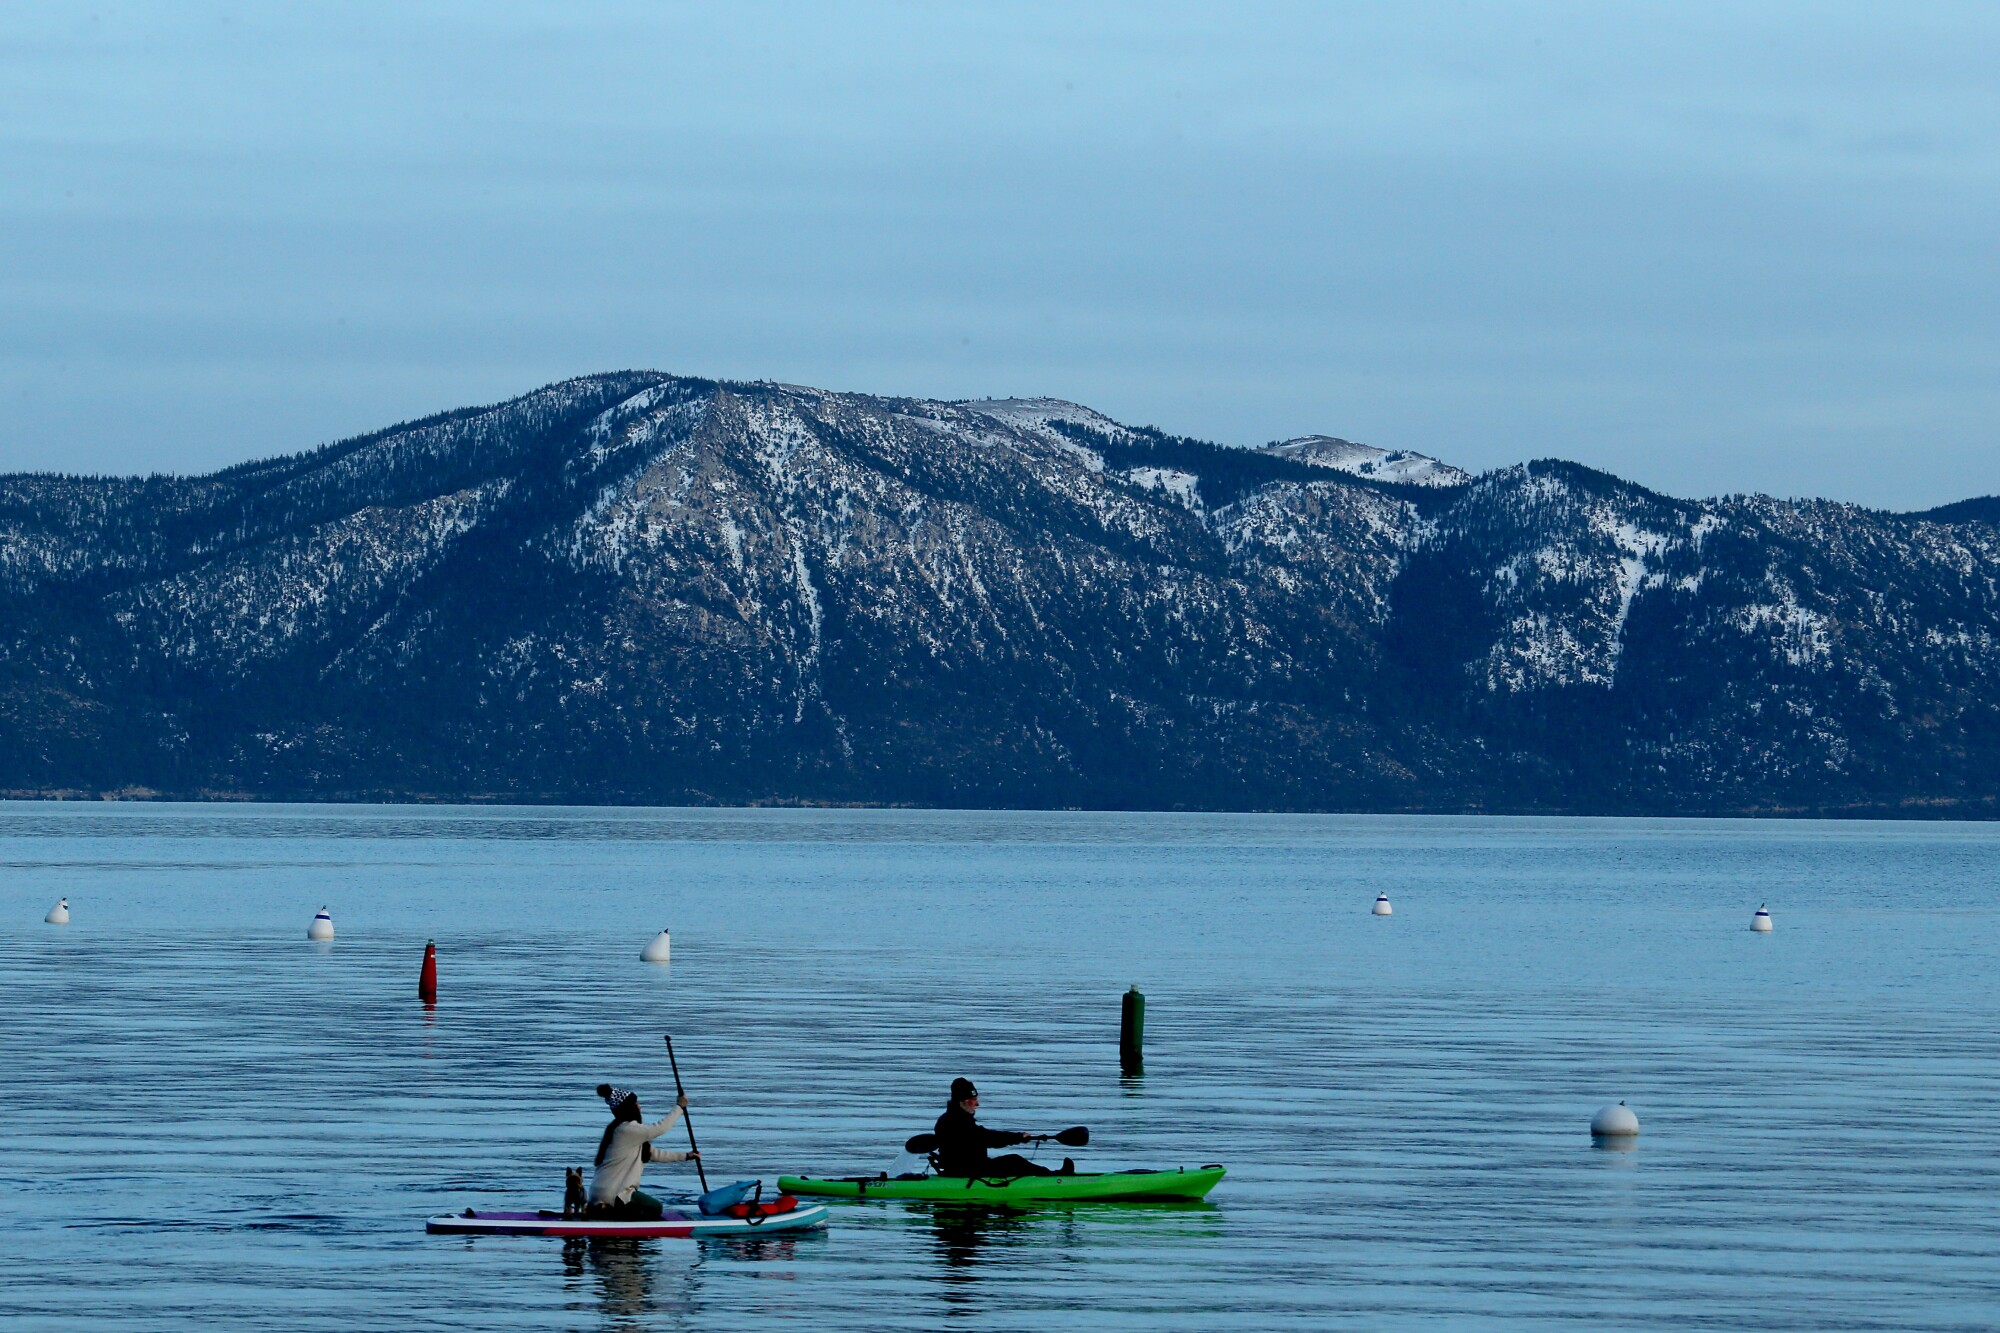 A paddle boarder and a kayaker glide across the surface of Lake Tahoe's frigid waters on Jan. 11.